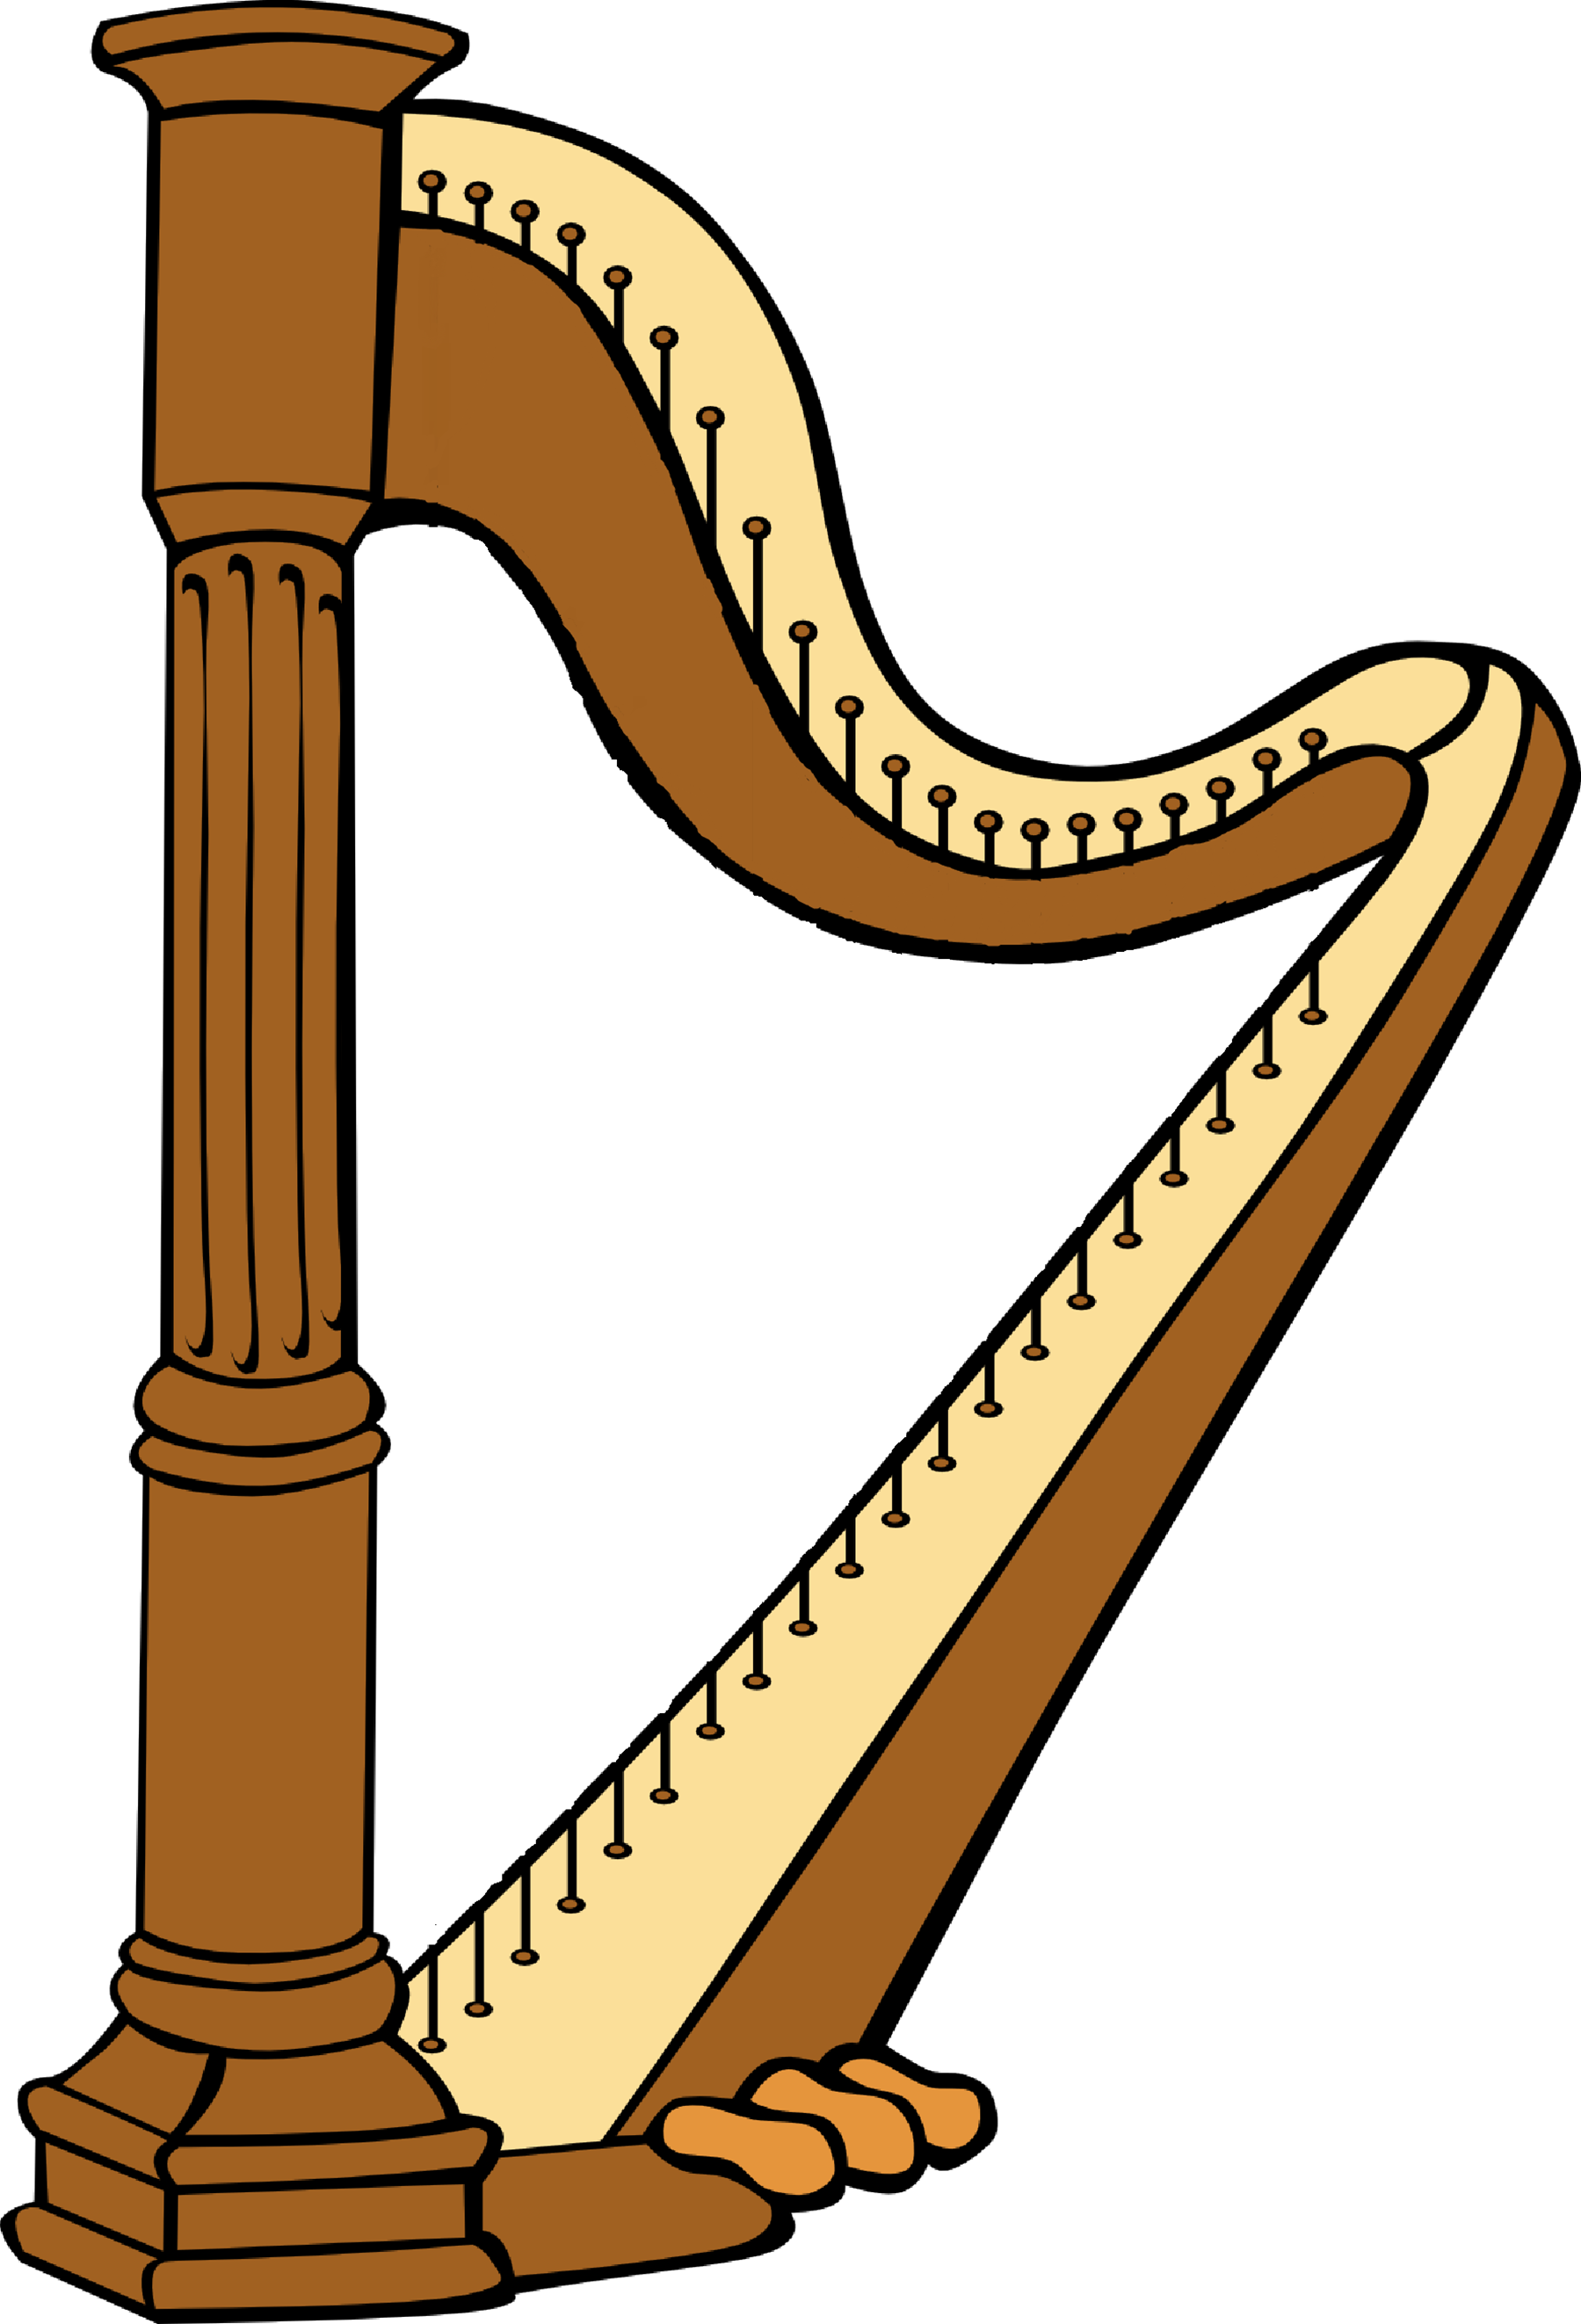 Harp clipart jack and the beanstalk. Storytime from library bonanza